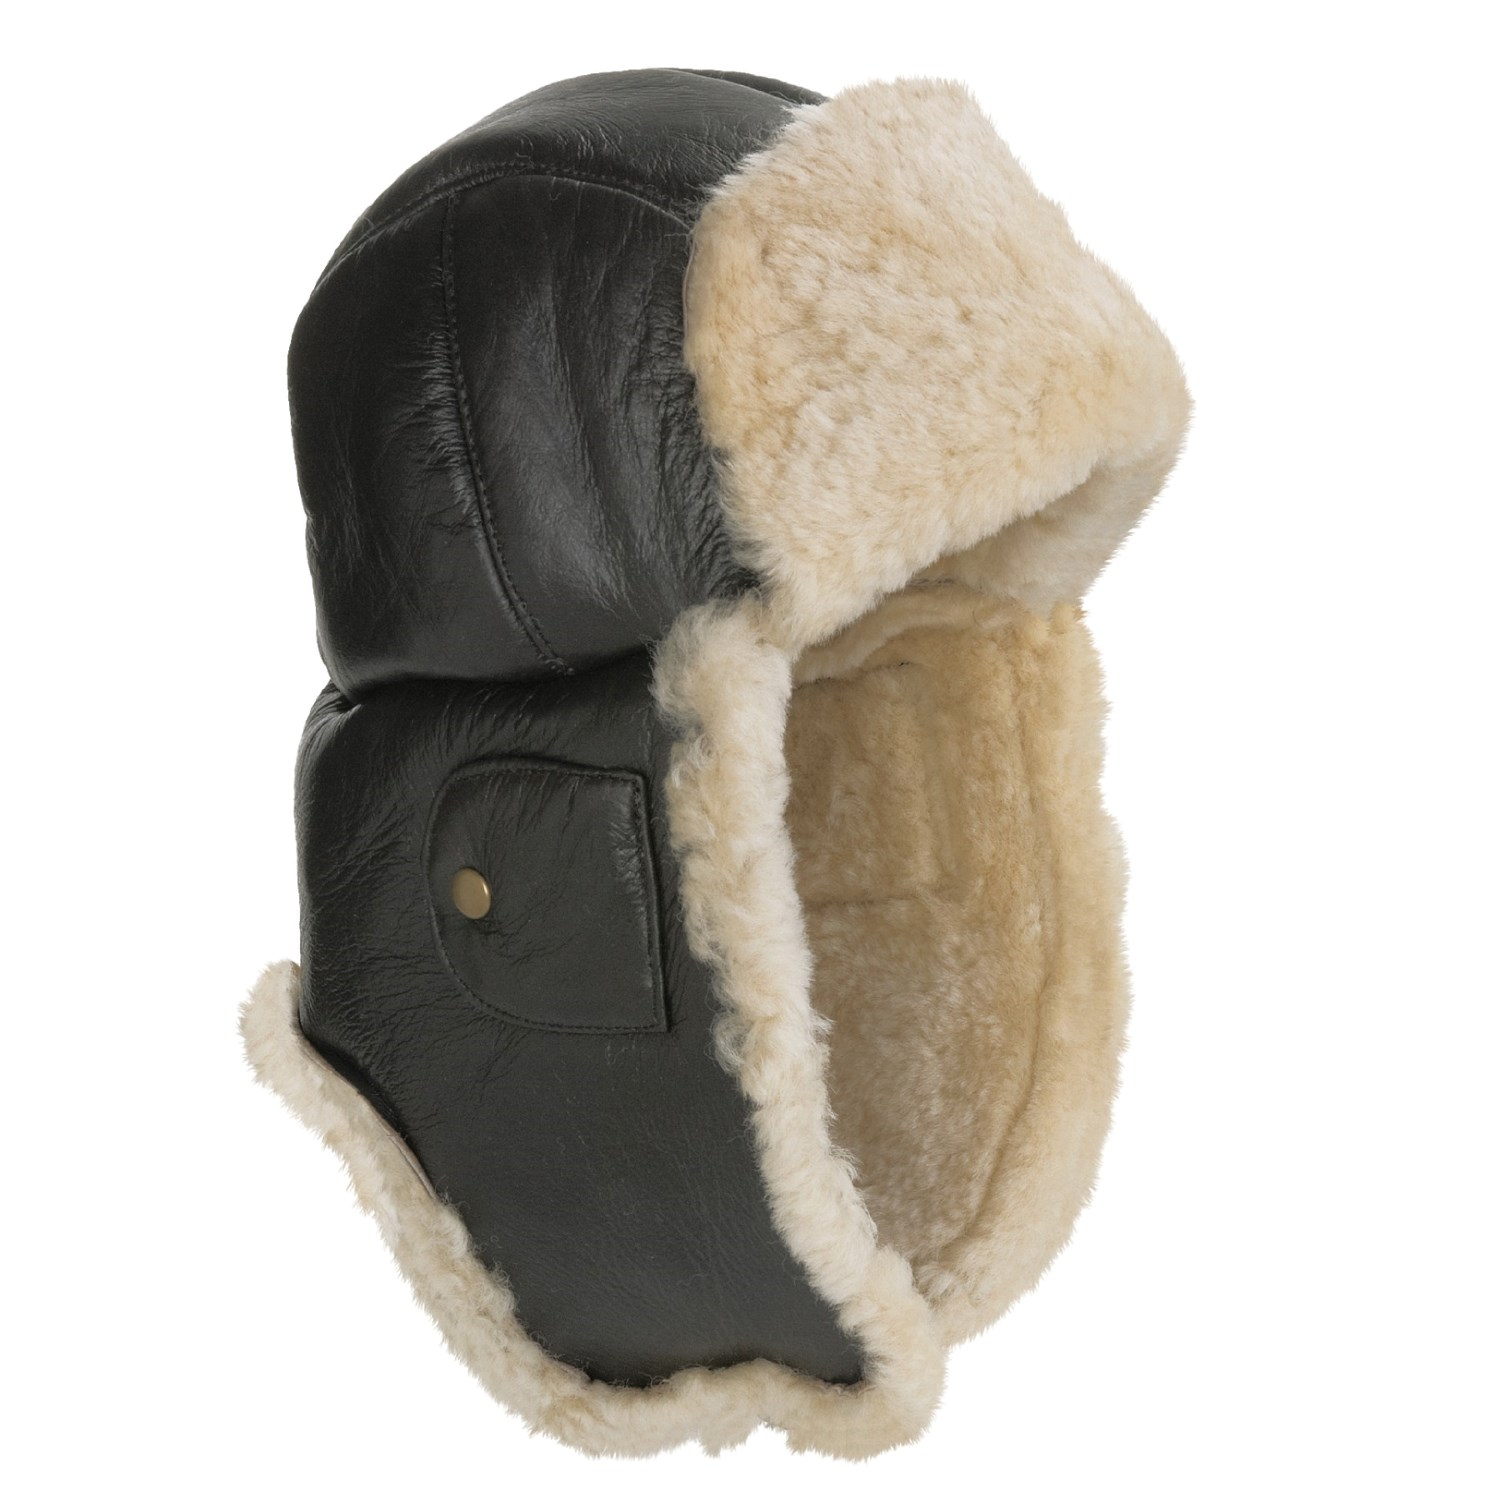 Be a Mad Bomber® Bombshell. Maybe your head is cold. Maybe your head is feeling unfashionable. Either way, a Mad Bomber hat is the perfect accessory—whether you need a hunting hat or a posh pillbox, a cozy knit cap or a beautiful bomber.